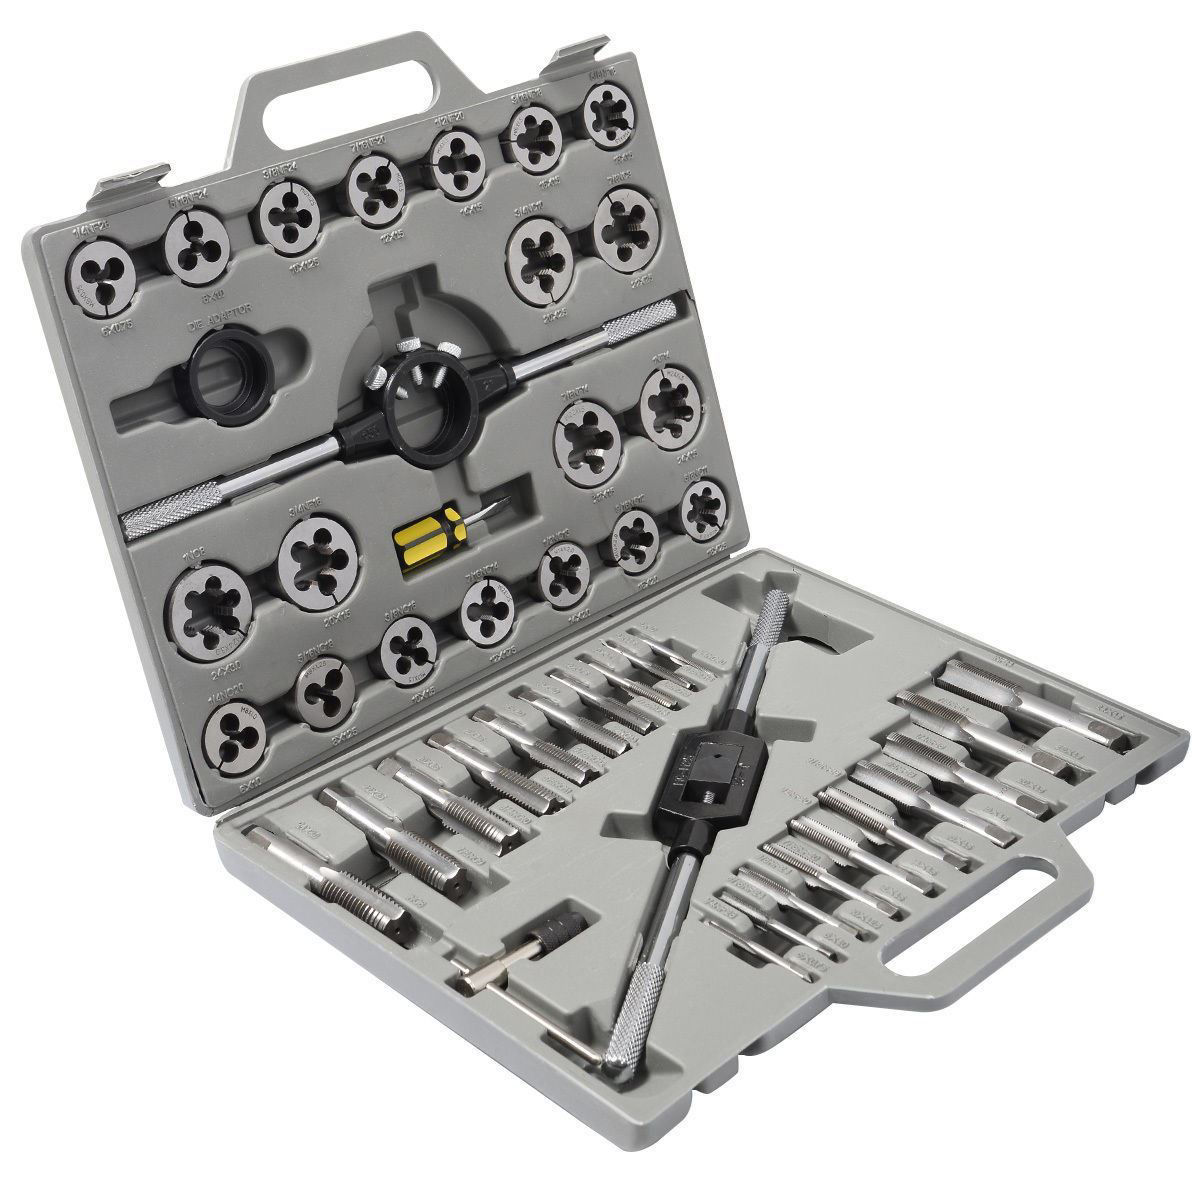 Picture of 45pc HSS Metric Tap and Die Set with Case